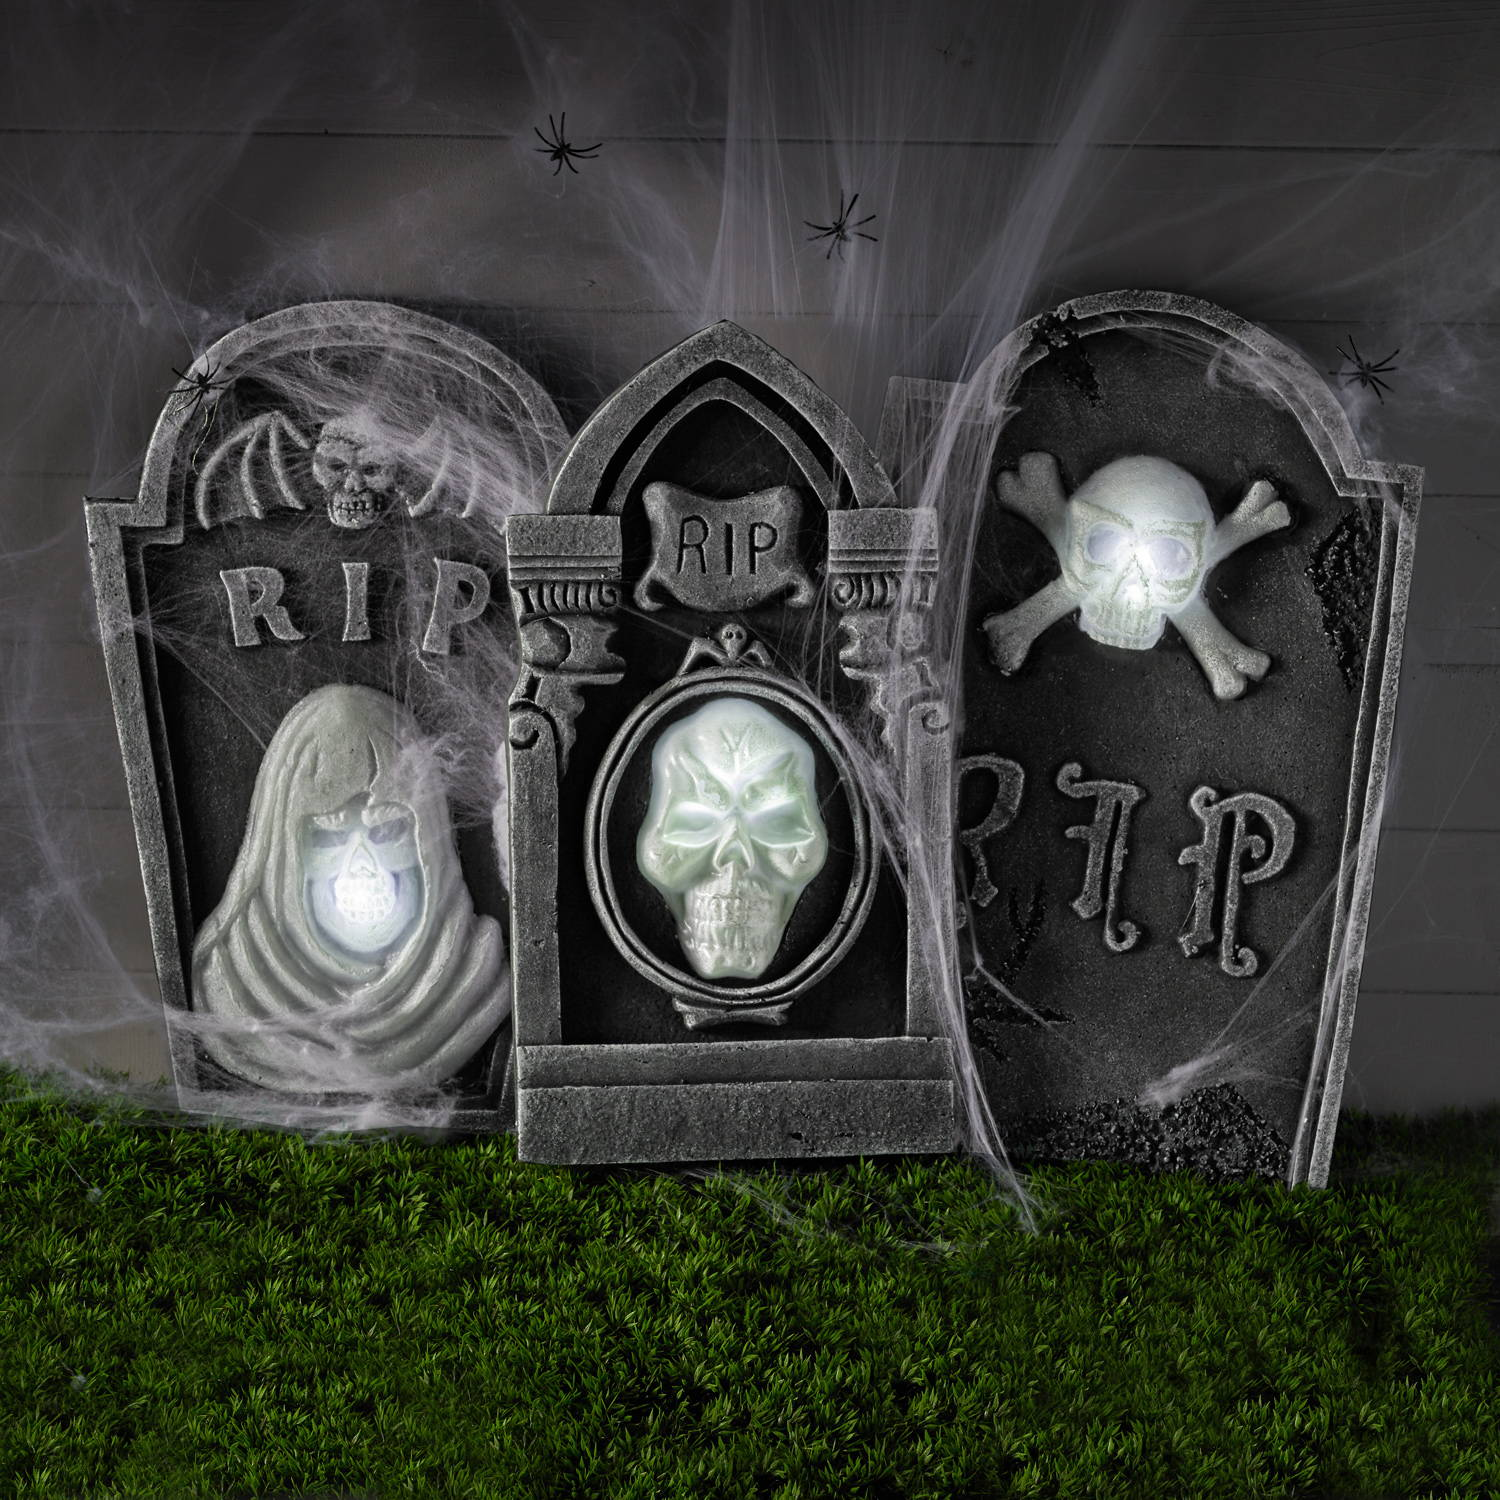 3 Illuminated Deathly Gravestone Props covered in cobwebs and spiders for a Halloween display